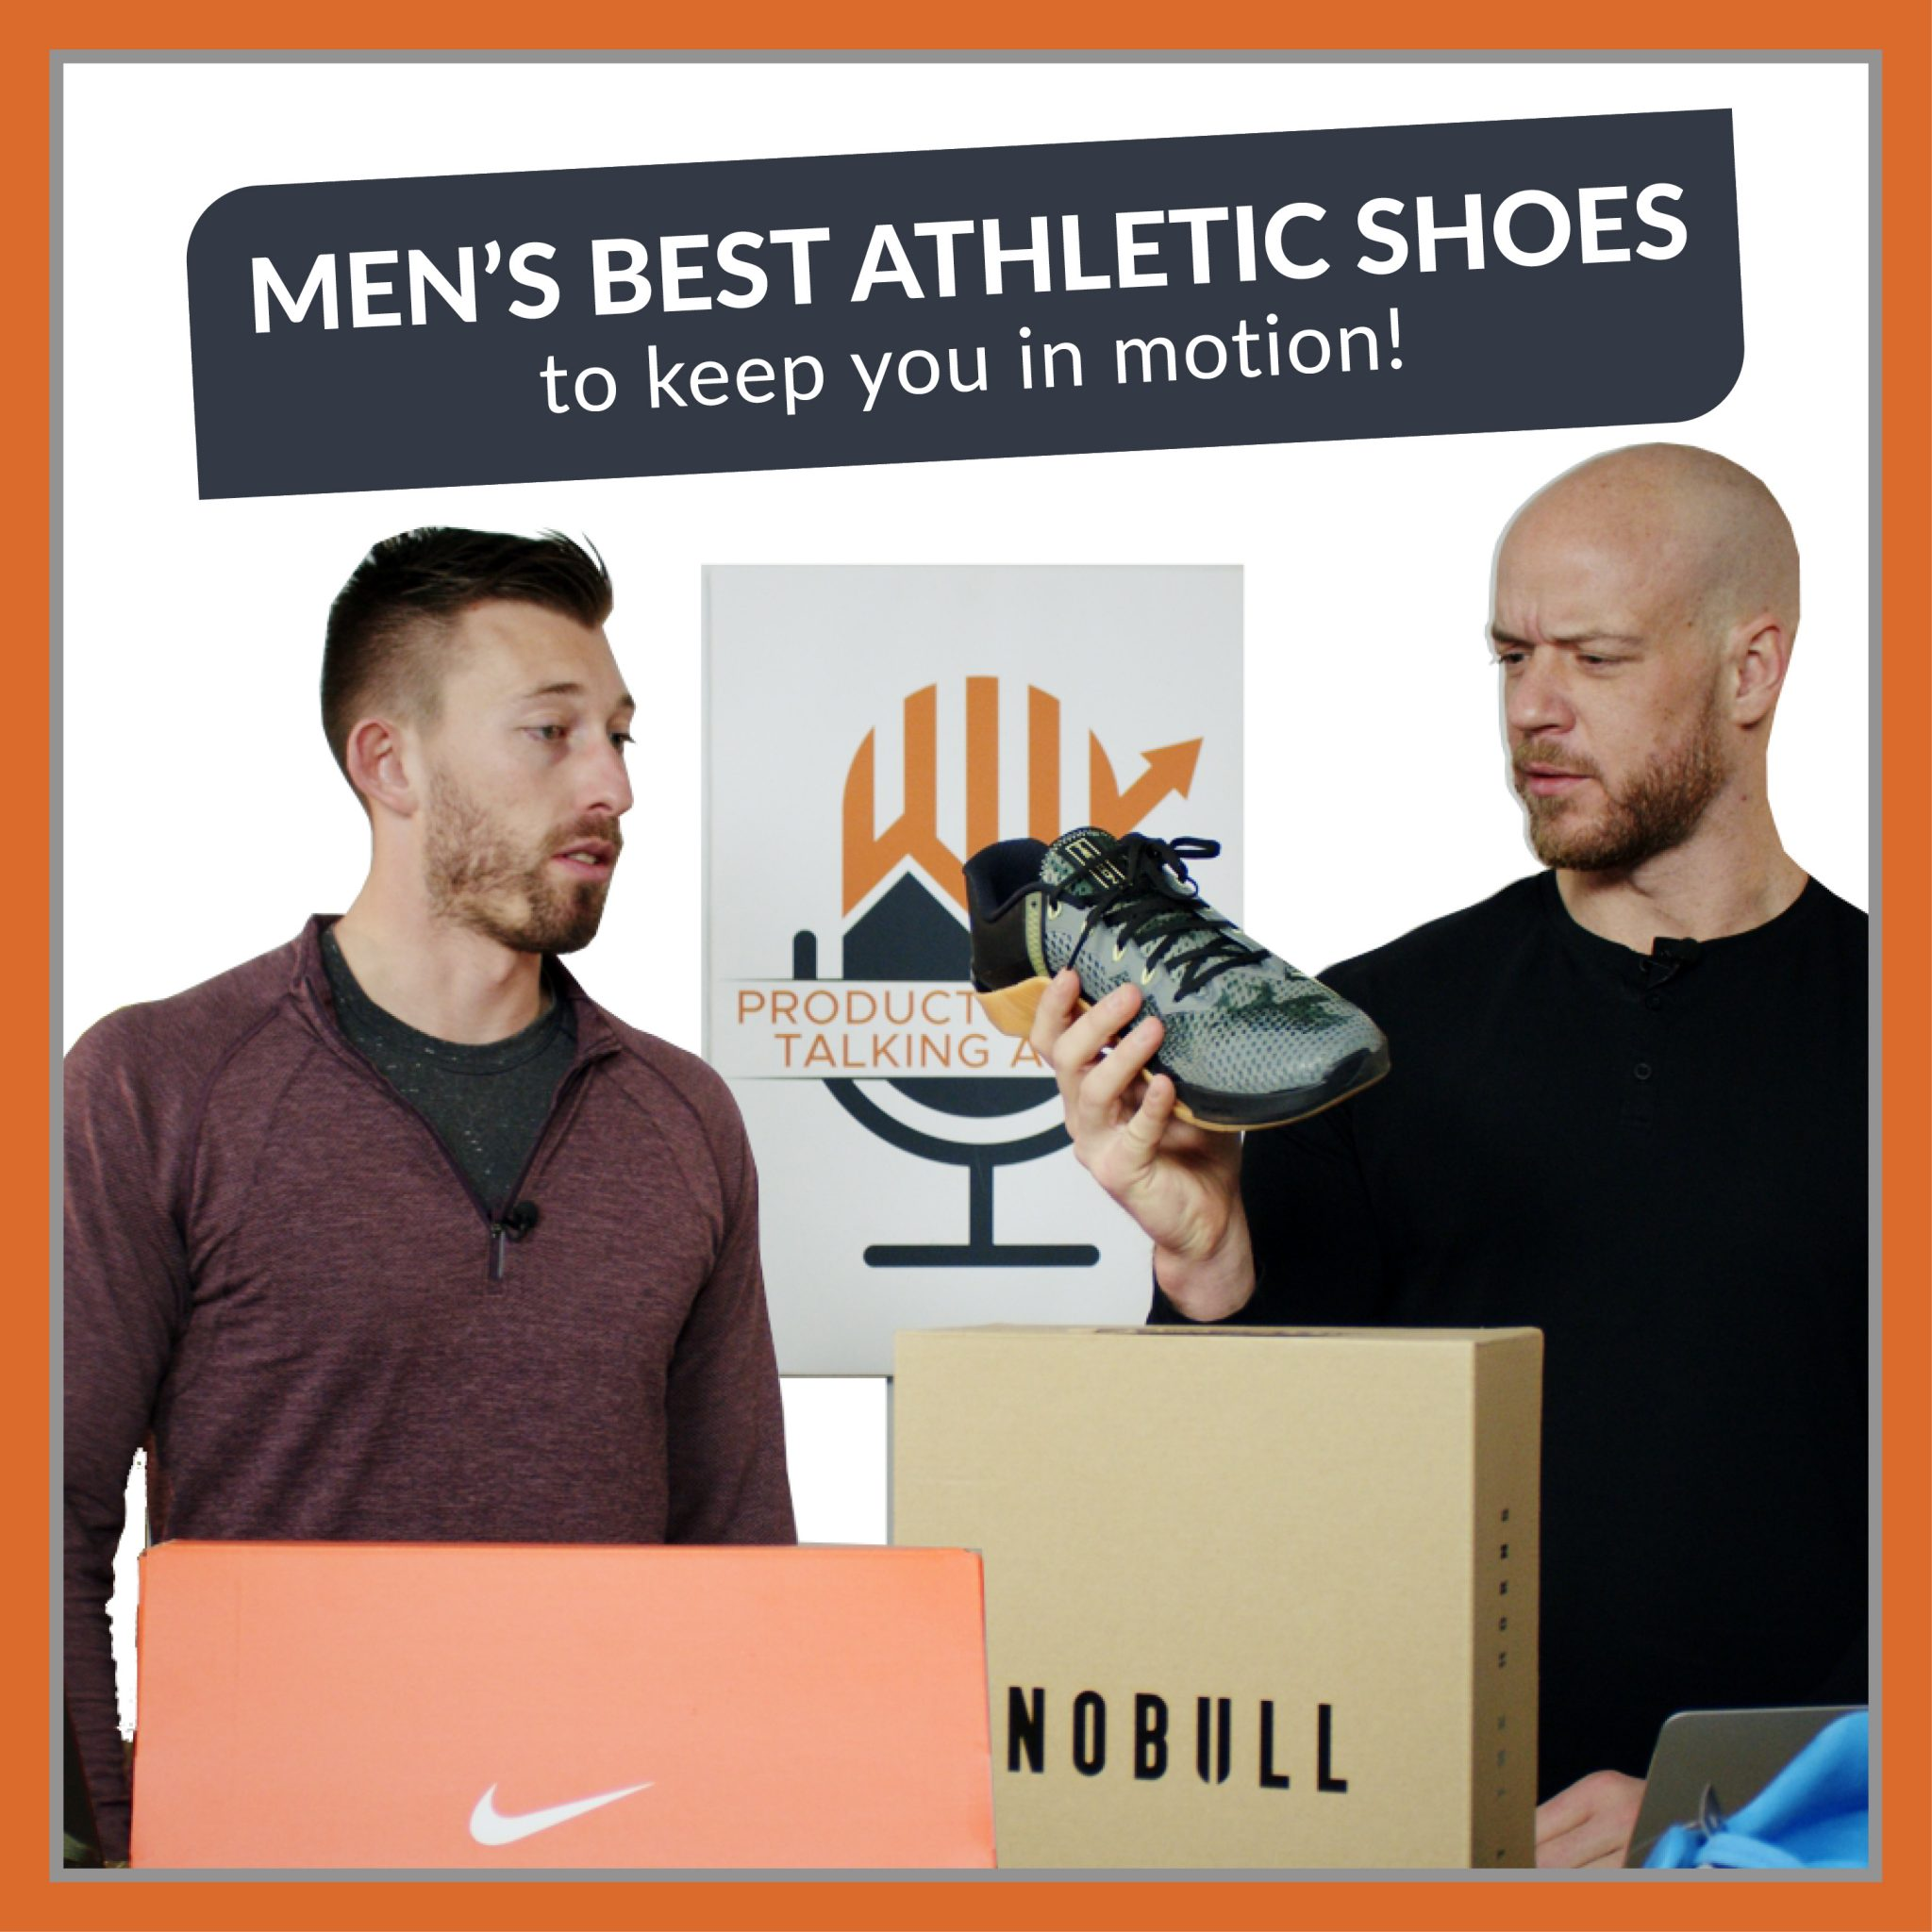 Our Favorite Footwear for Functional Fitness | Nike vs. NoBull